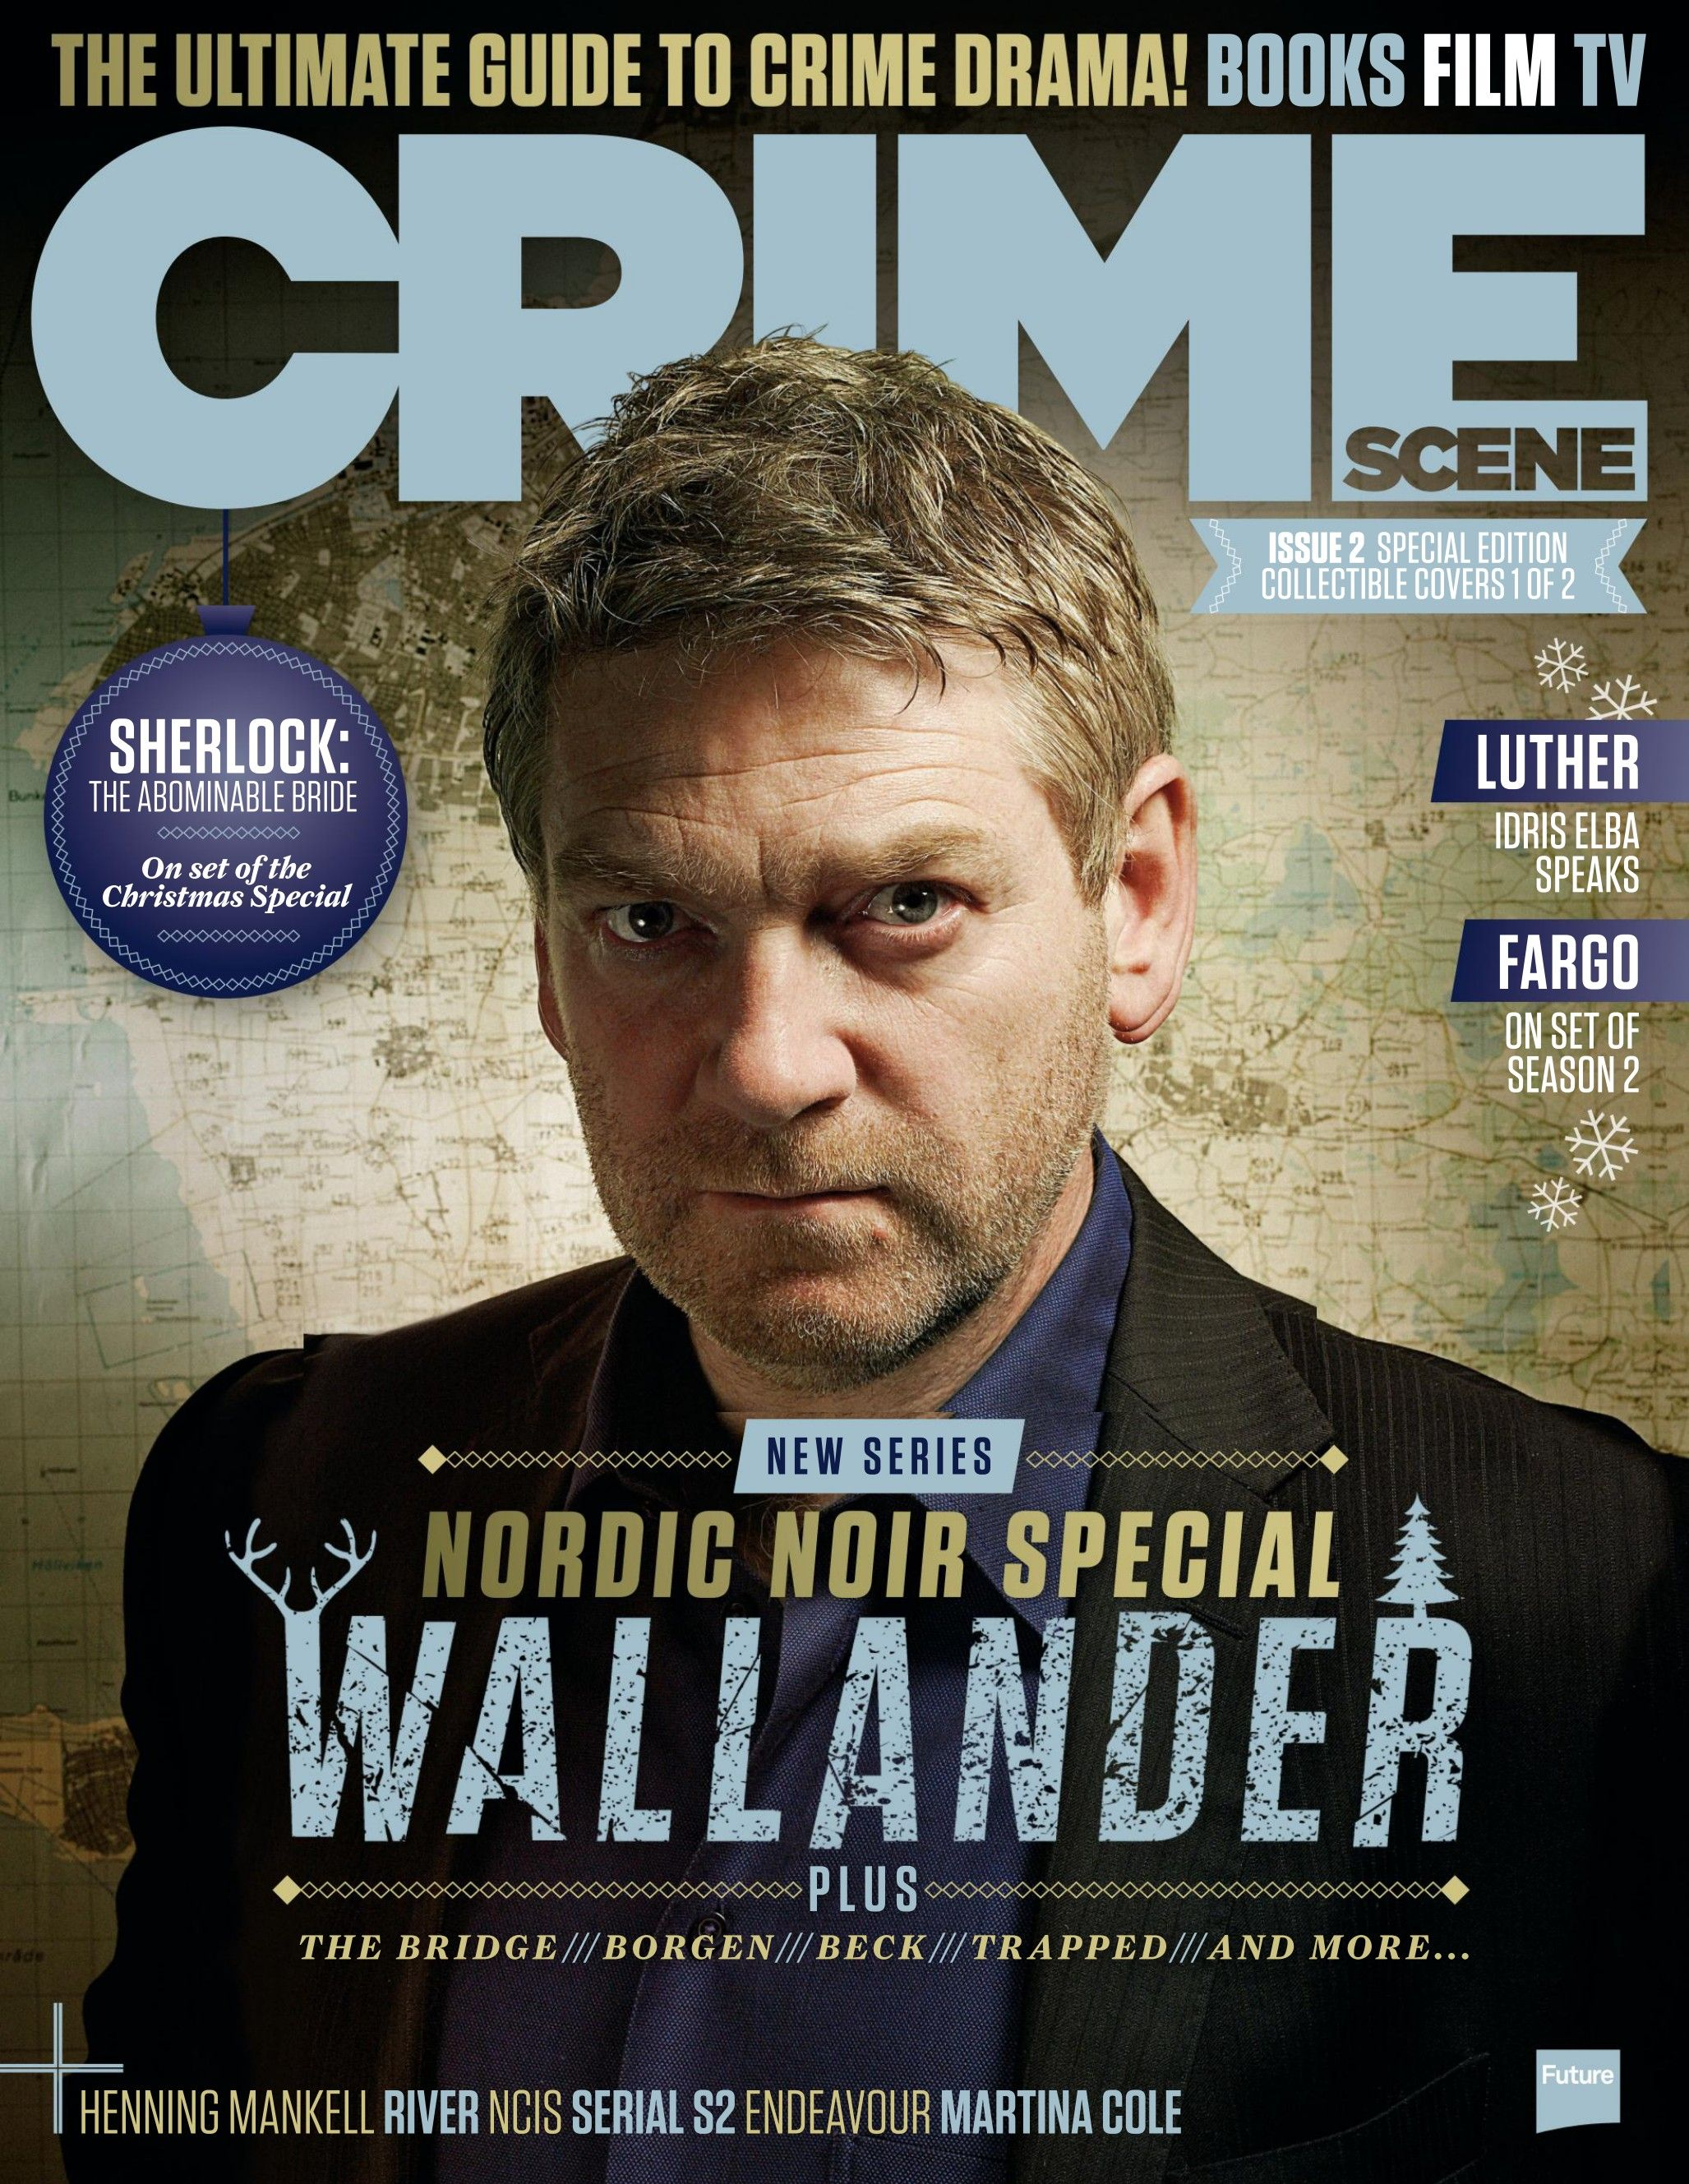 CRIME SCENE Magazine 2. #Luther, #Sherlock, #Fargo, #Wallander and all best fiction #series, #books and #films.